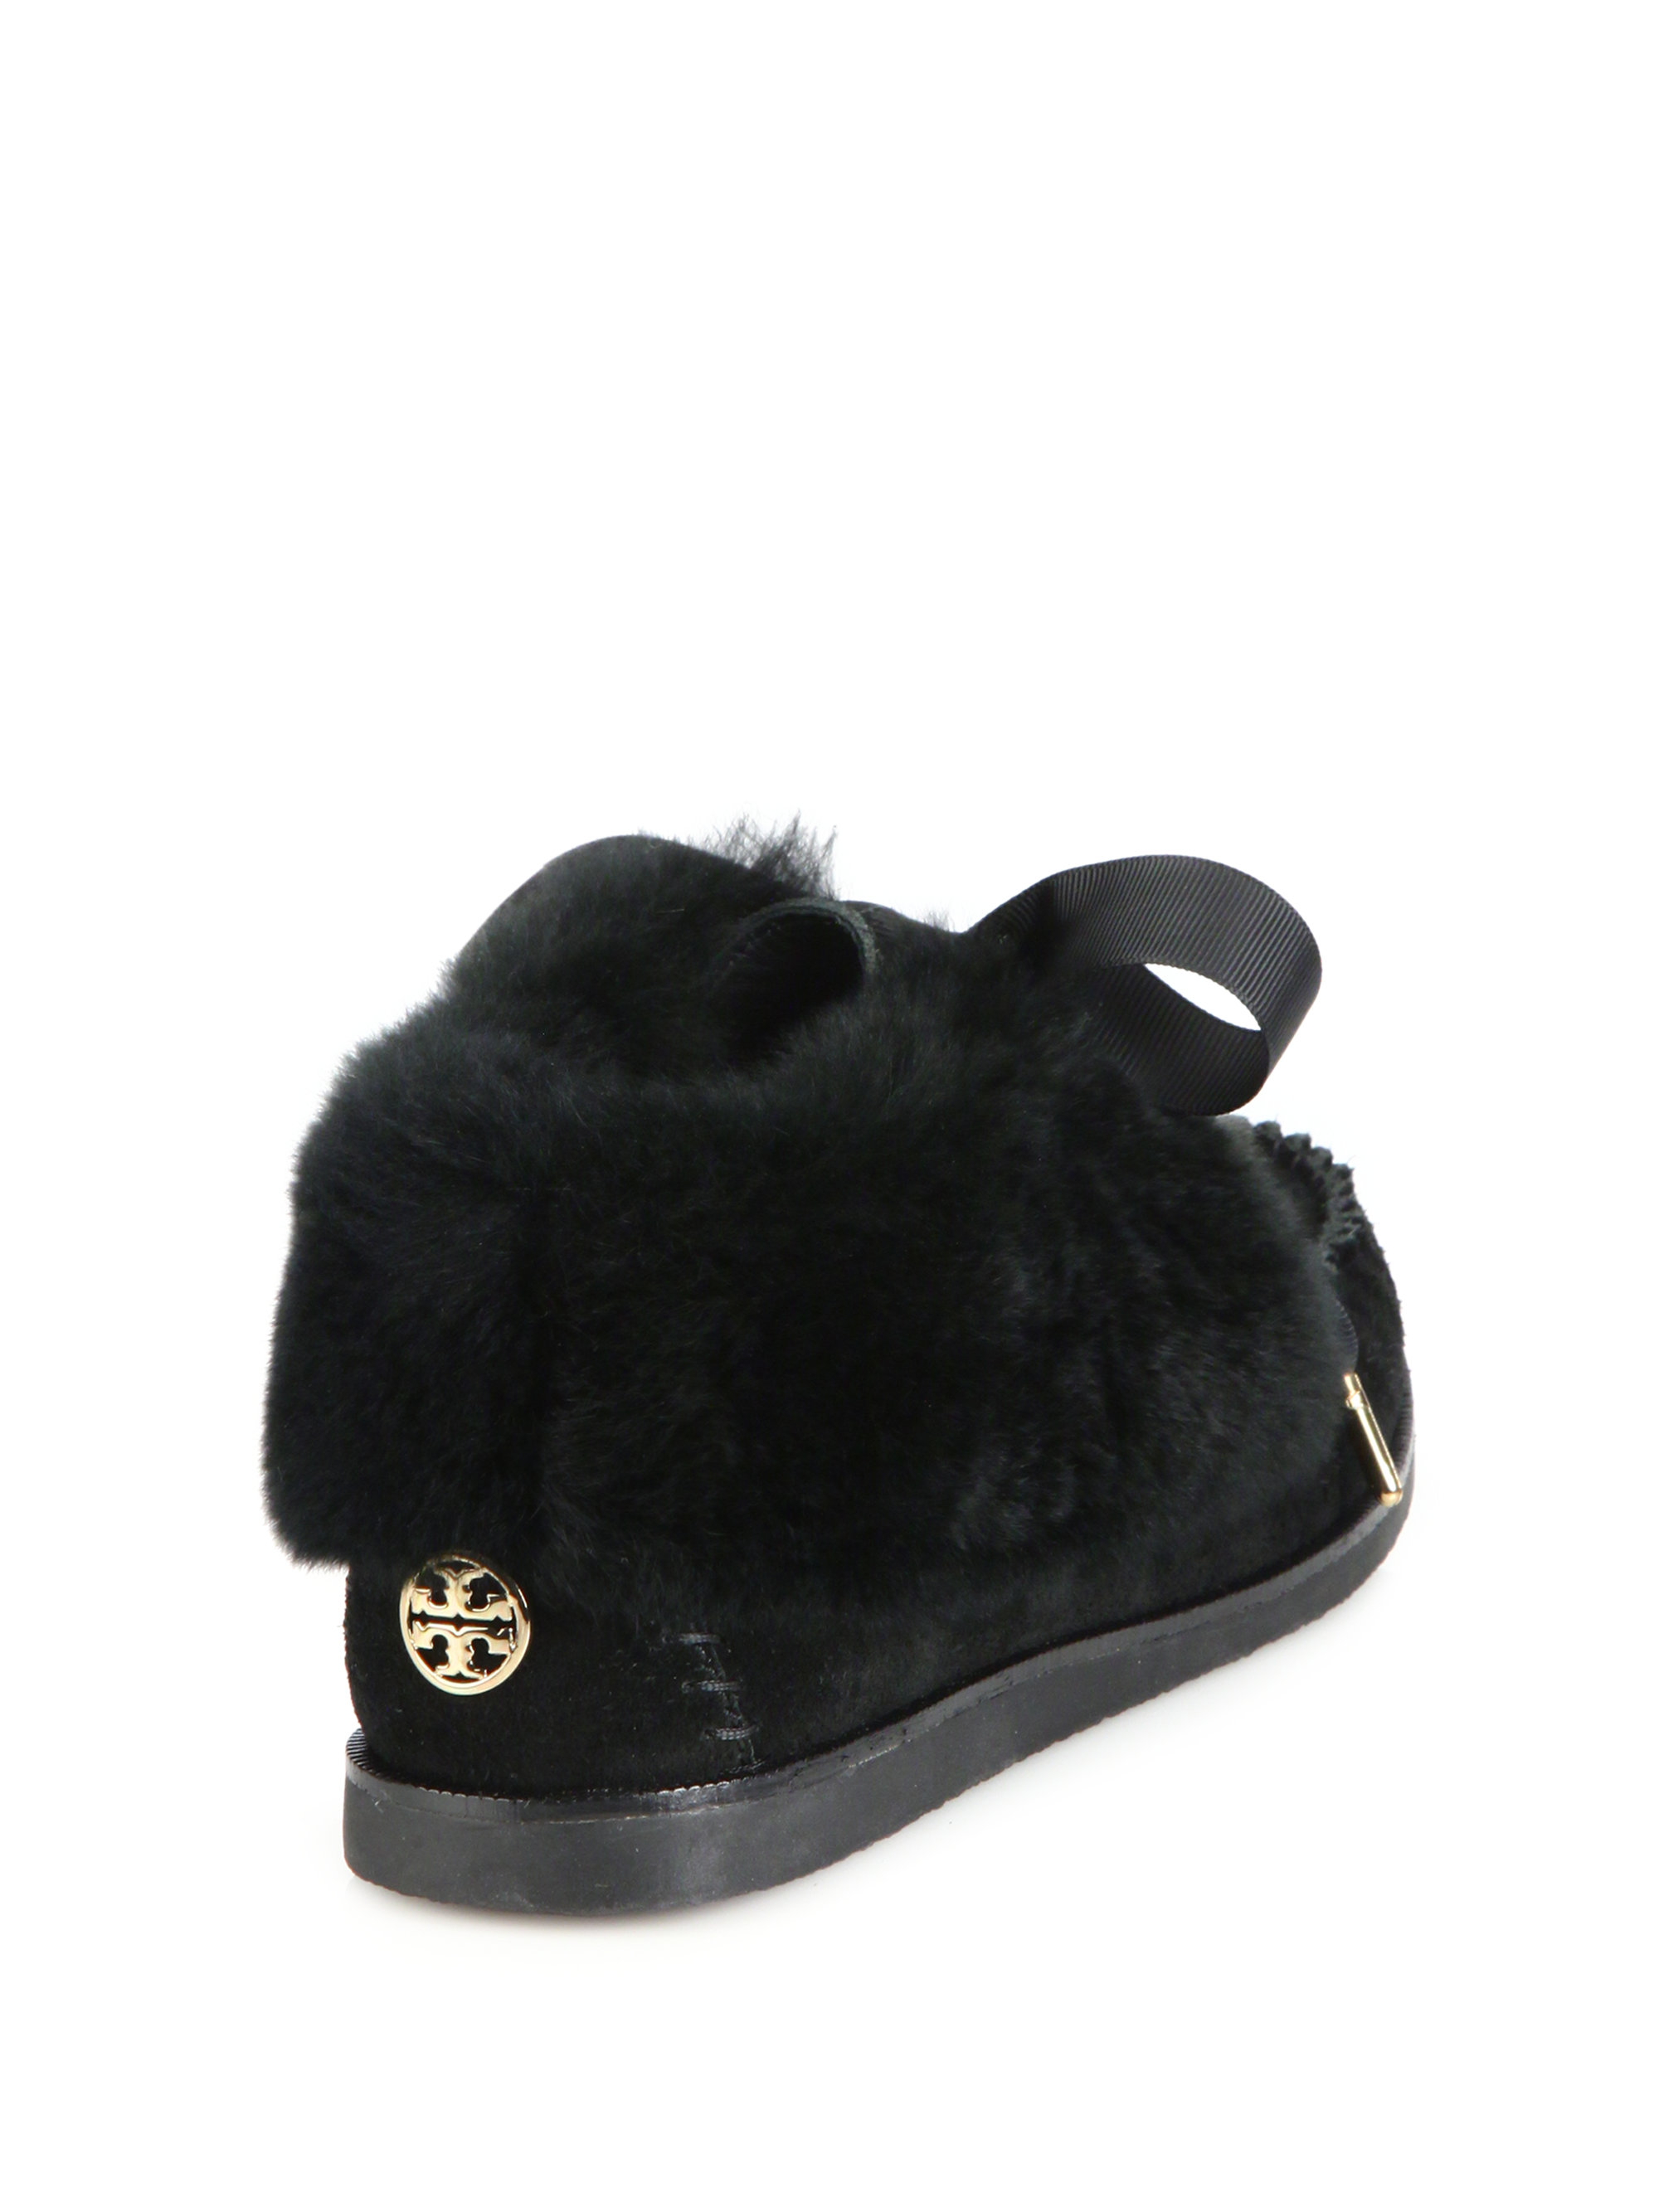 sale low shipping fee Tory Burch Aberdeen Fur-Trimmed Moccasins best online free shipping explore buy cheap amazing price ts0jAzm